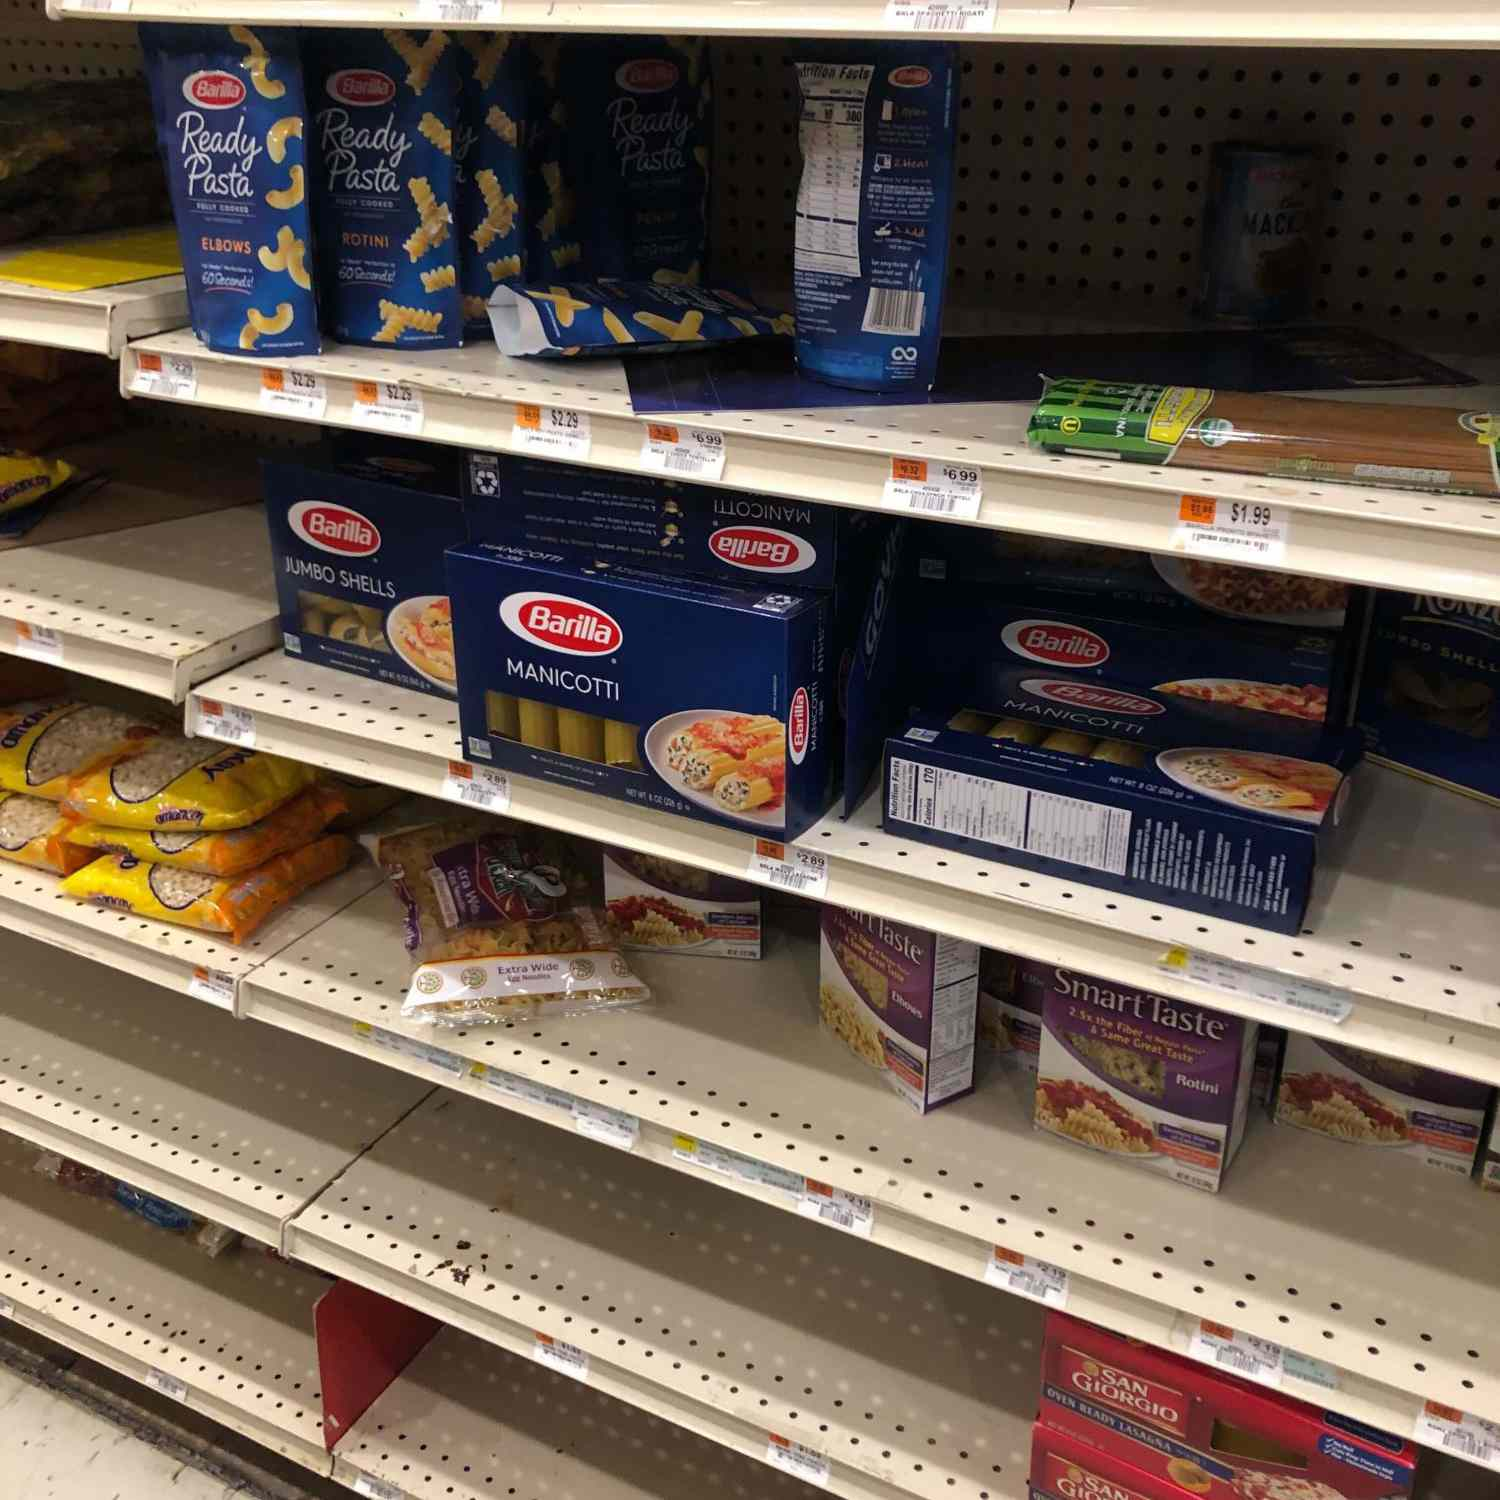 Grocery shelves with only manicotti remaining